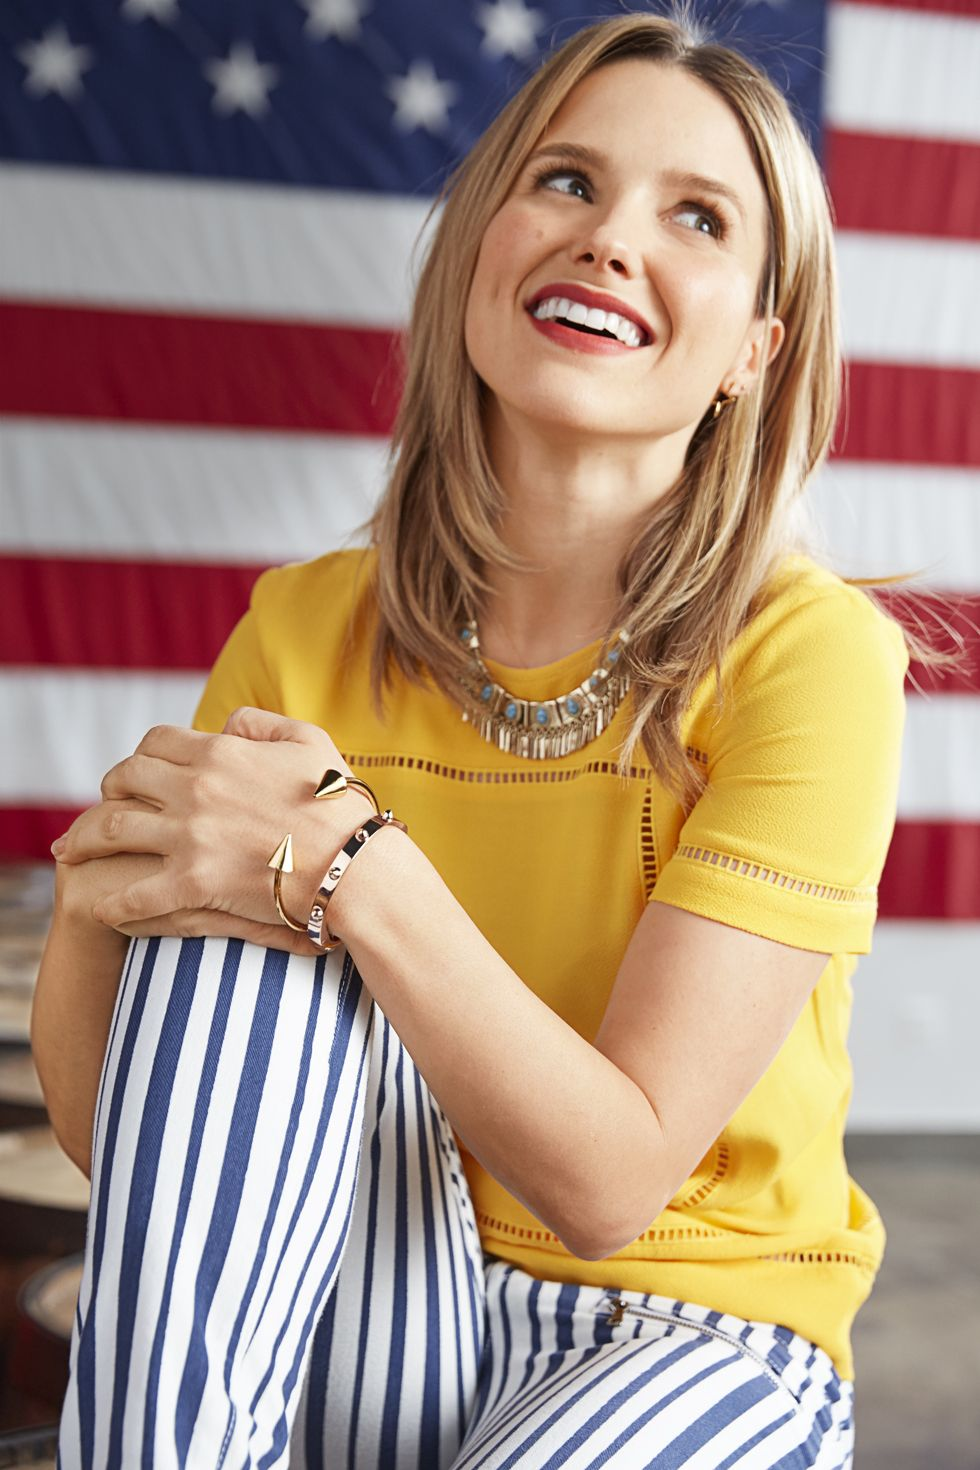 "A colorful top (with fun peekaboo trim) says a big hello to spring. Color cue: Canary yellow is the season's hottest hue.  <em><strong>Get the look:</strong></em>  • Top<strong>,</strong> Michael Michael Kors, $145, <a target=""_blank"" href=""http://www.michaelkors.com/""><em>michaelkors.com</em></a>  • Jeans, $239, <a target=""_blank"" href=""http://www.paige.com/""><em>paige.com</em></a>  • Earrings, $110, <a target=""_blank"" href=""http://www.sunaharamalibu.com/""><em>sunaharamalibu.com</em></a>  • Necklace, Jessica Simpson Collection, $58, <a target=""_blank"" href=""http://www.belk.com/""><em>belk.com</em></a>  • Bracelets, $125 and $150, <a target=""_blank"" href=""http://www.ccskye.com/""><em>ccskye.com</em></a>  ON LOCATION: <a target=""_blank"" href=""http://revbrew.com/""><em>Revolution Brewing Company</em></a>"